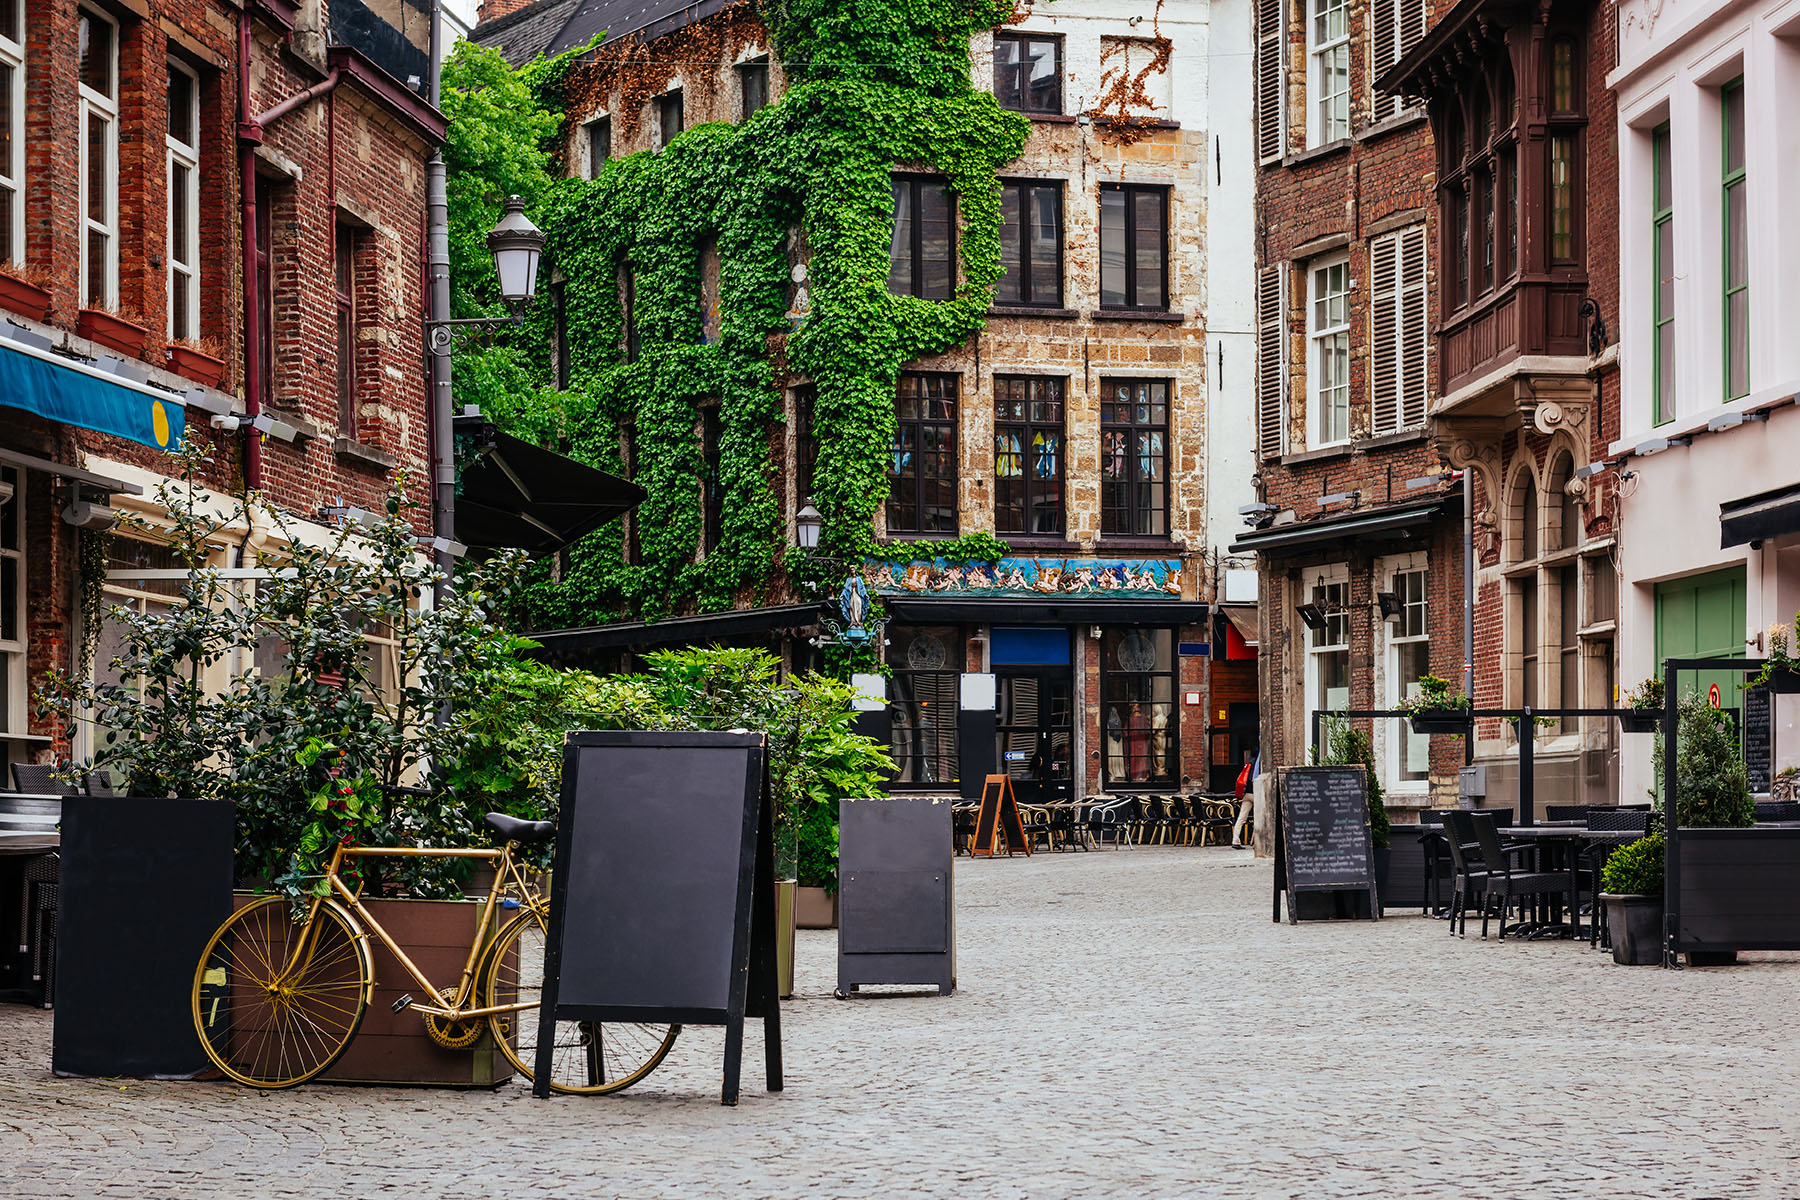 Typical old buildings with cafés and apartments in the city center of Antwerp